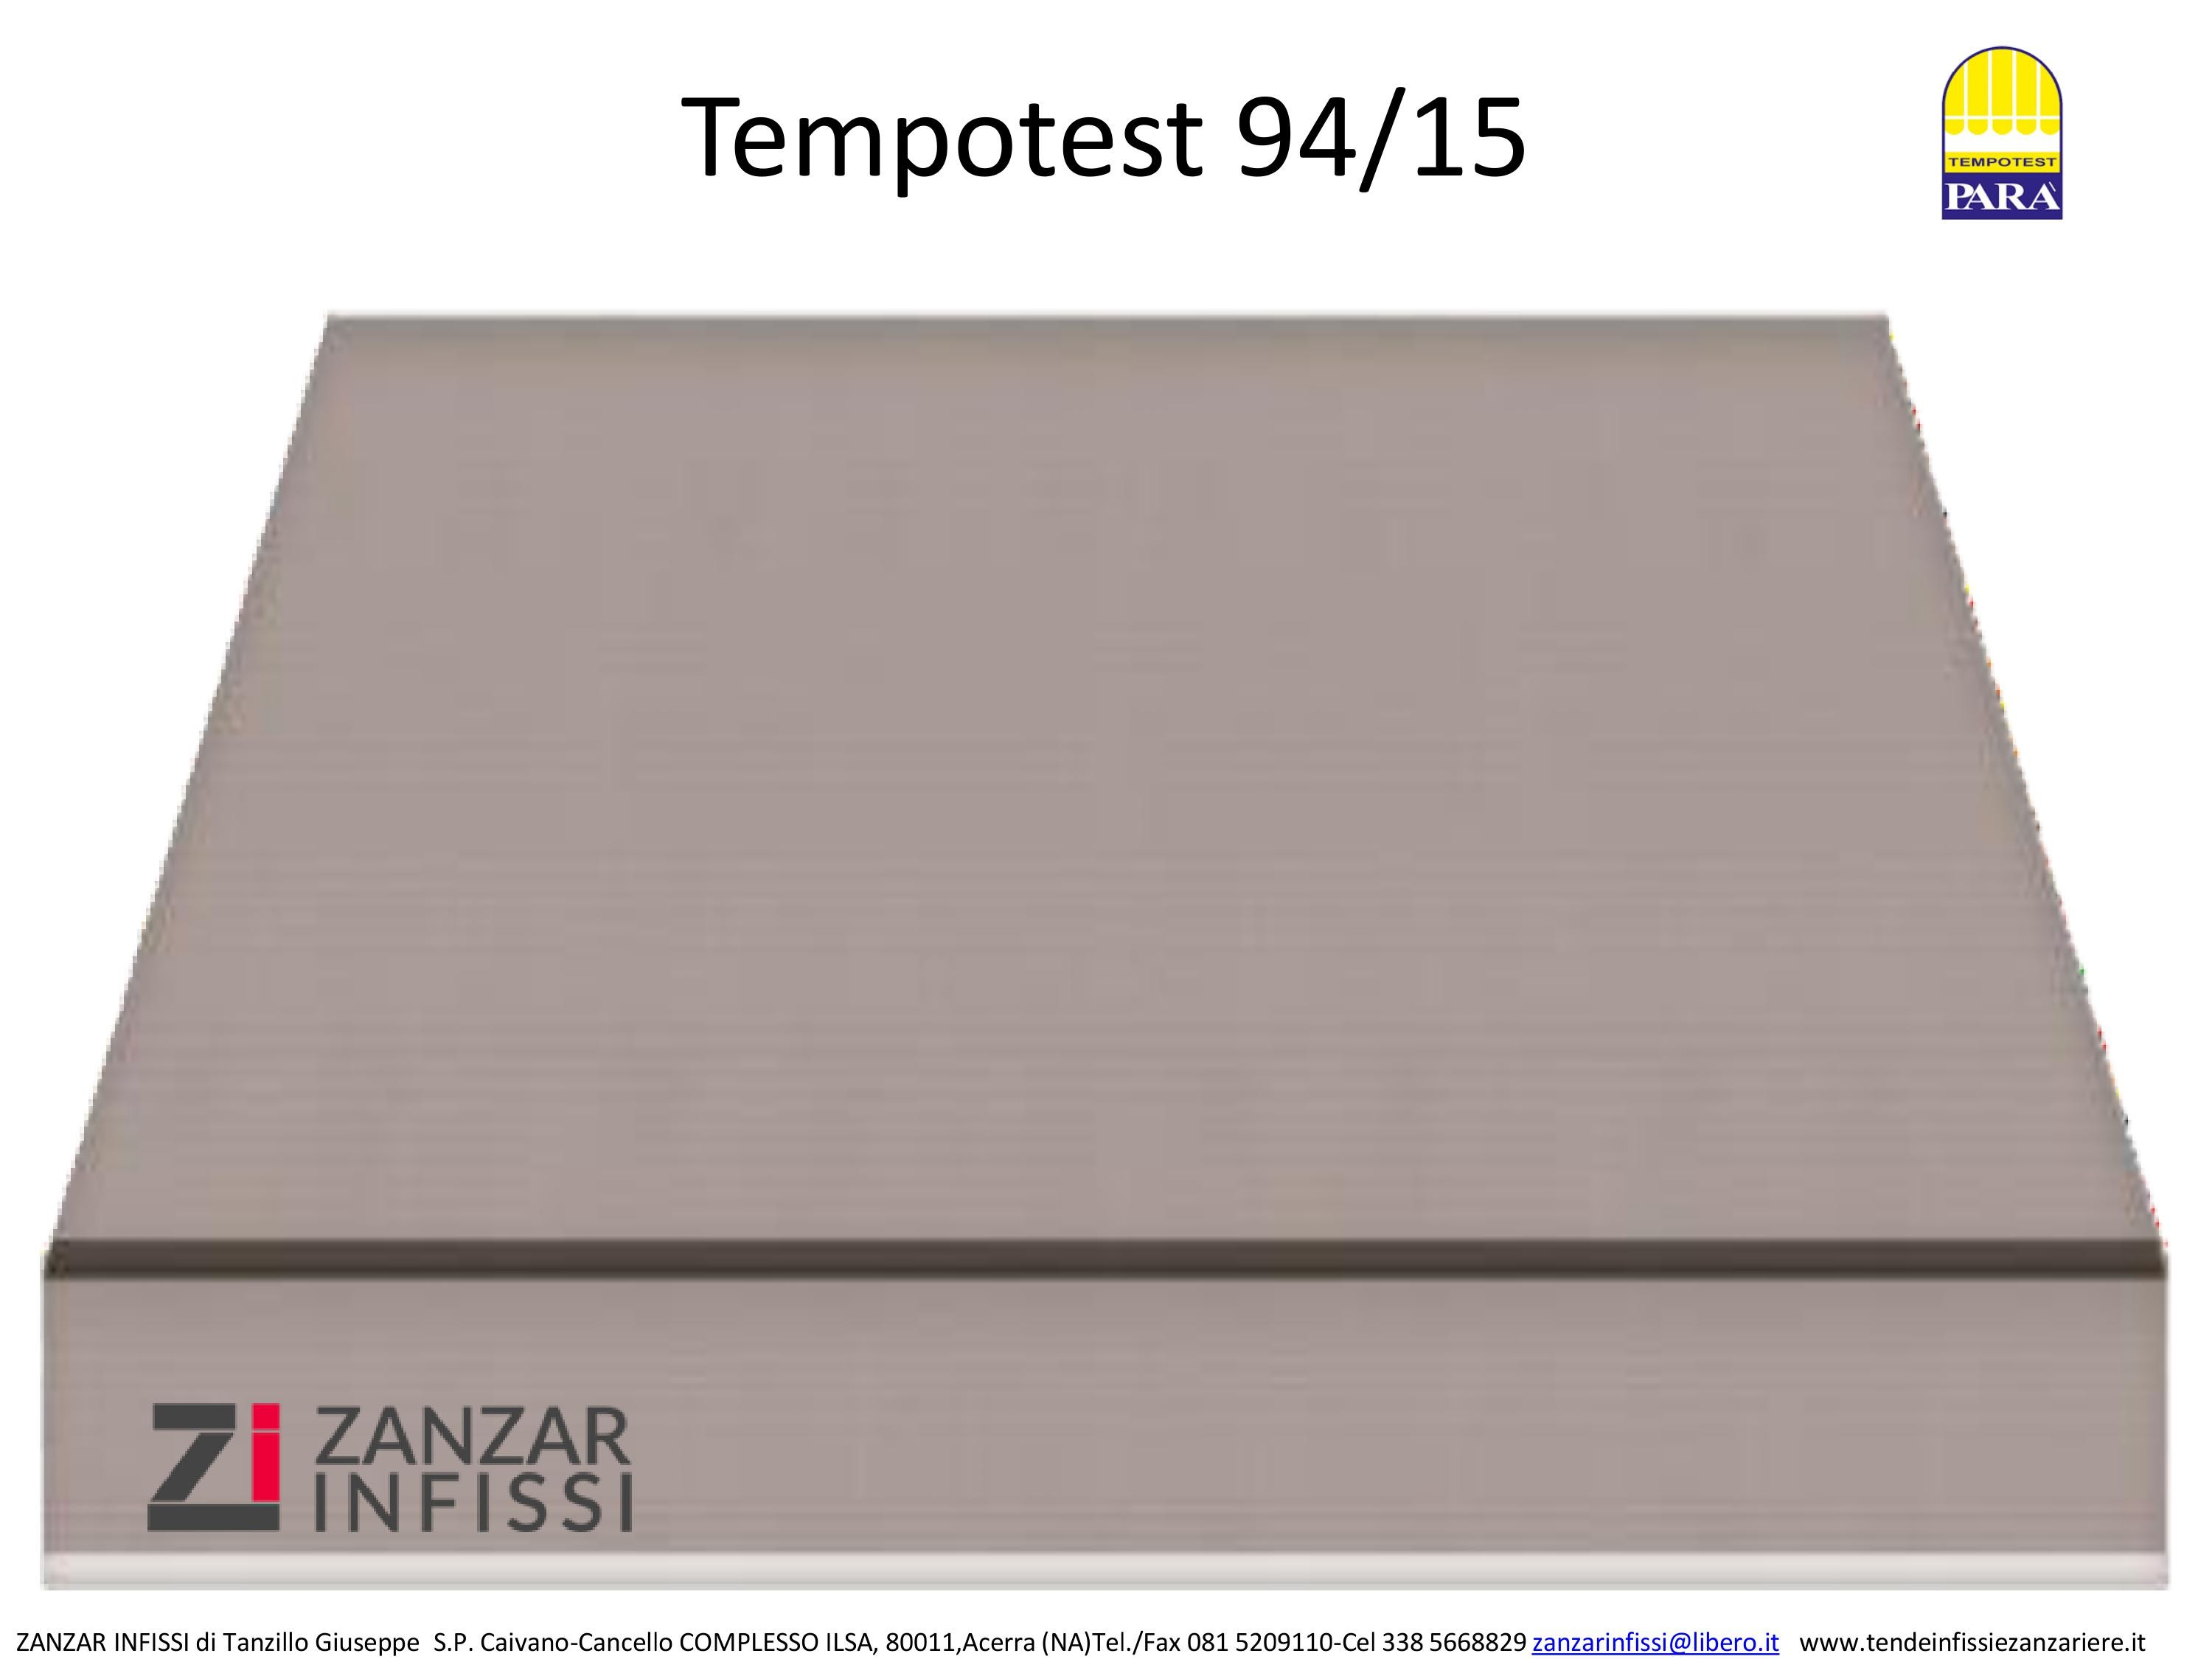 Tempotest 94/15